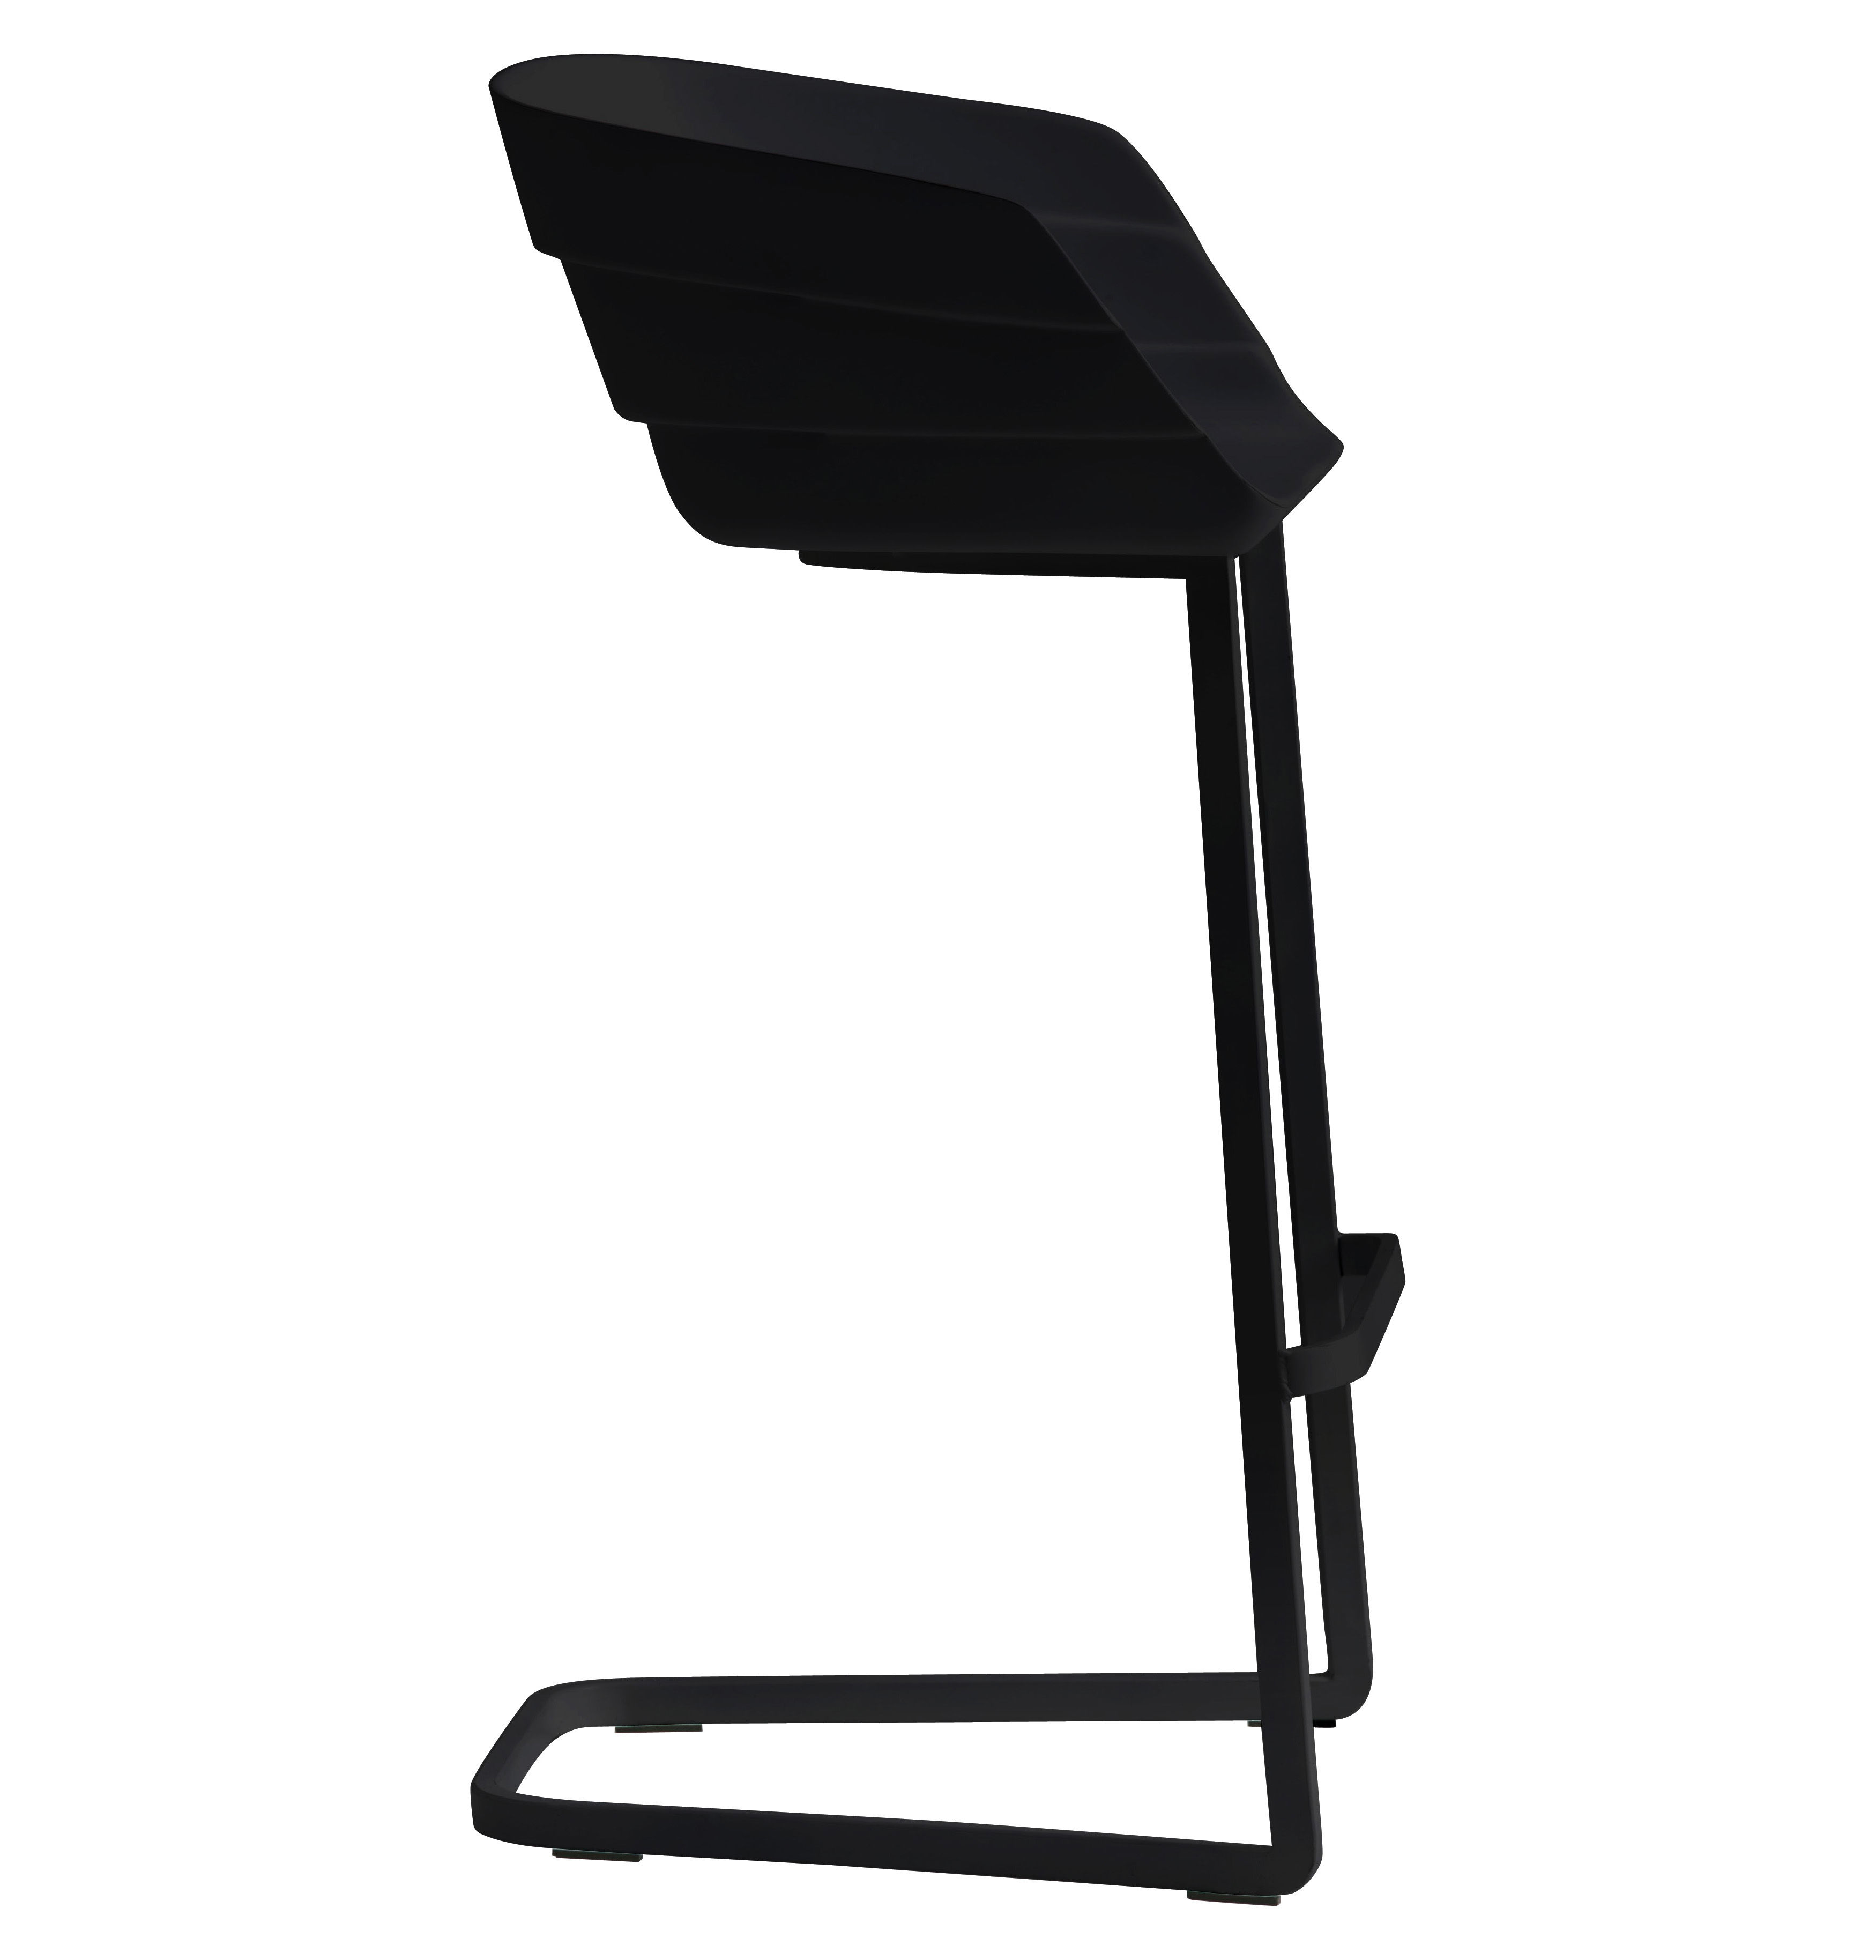 Chaise de bar rift h 65 cm coque plastique pied - Chaise bar hauteur assise 65 cm ...